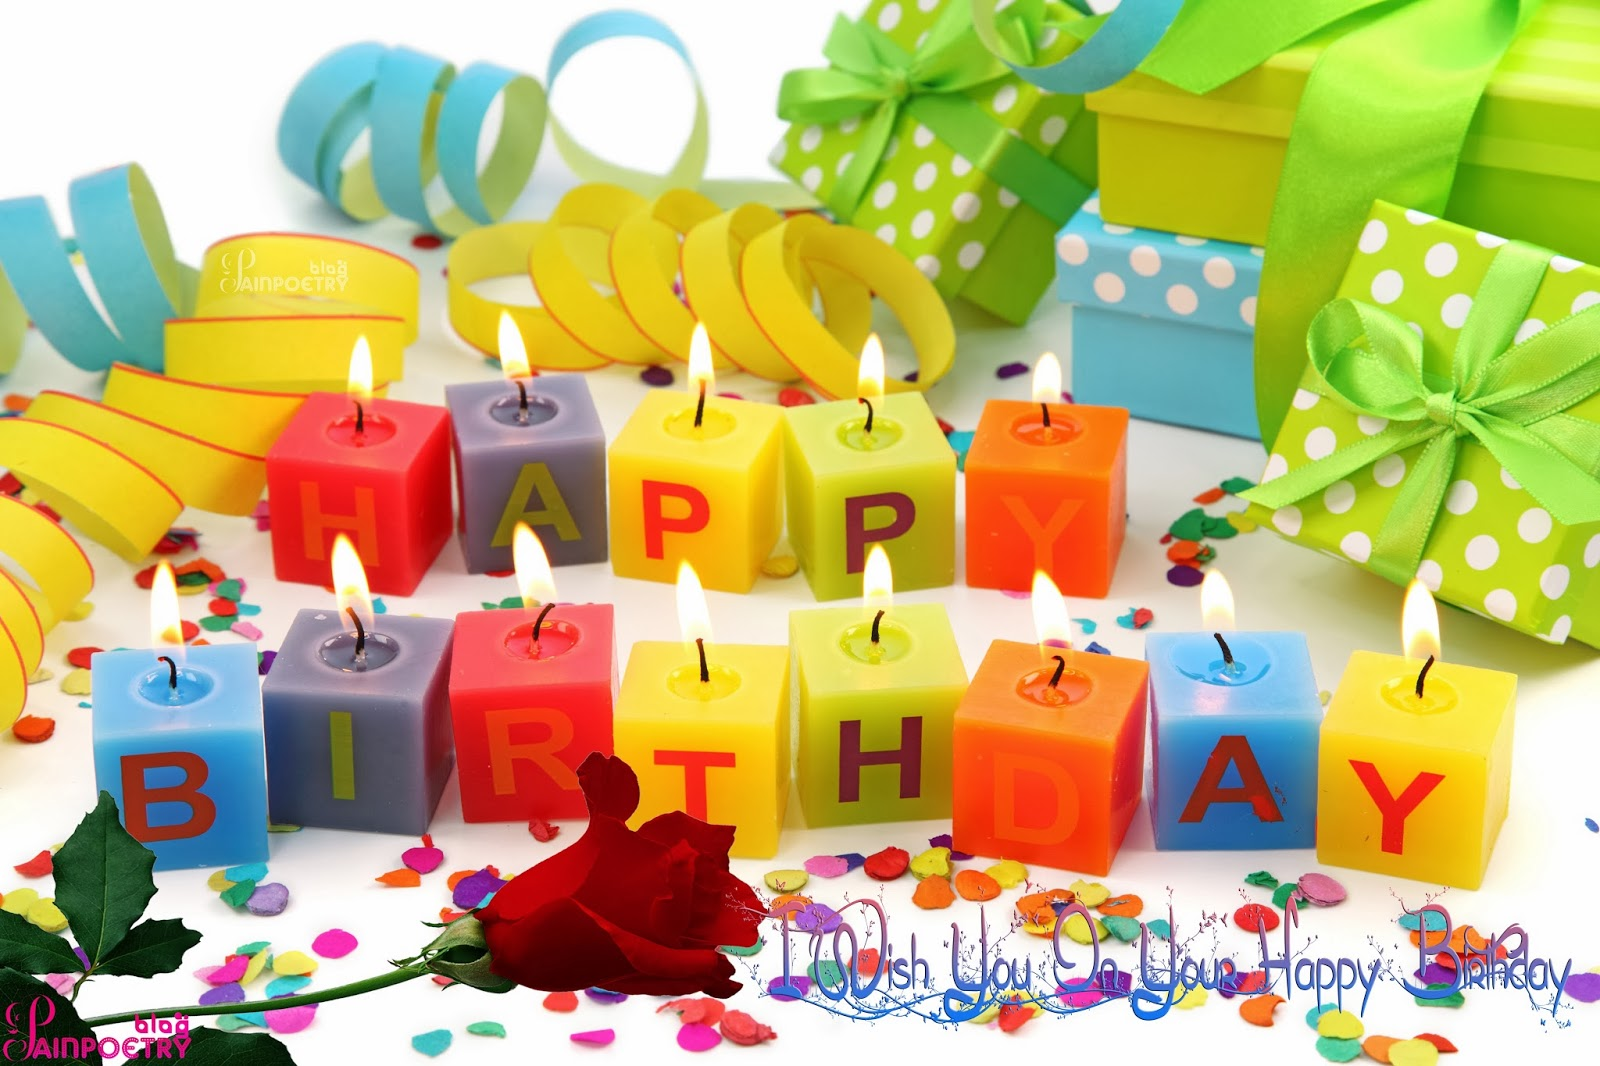 Happy-Birthday-Special-Wallpaper-With-Candles-Image-Photo-HD